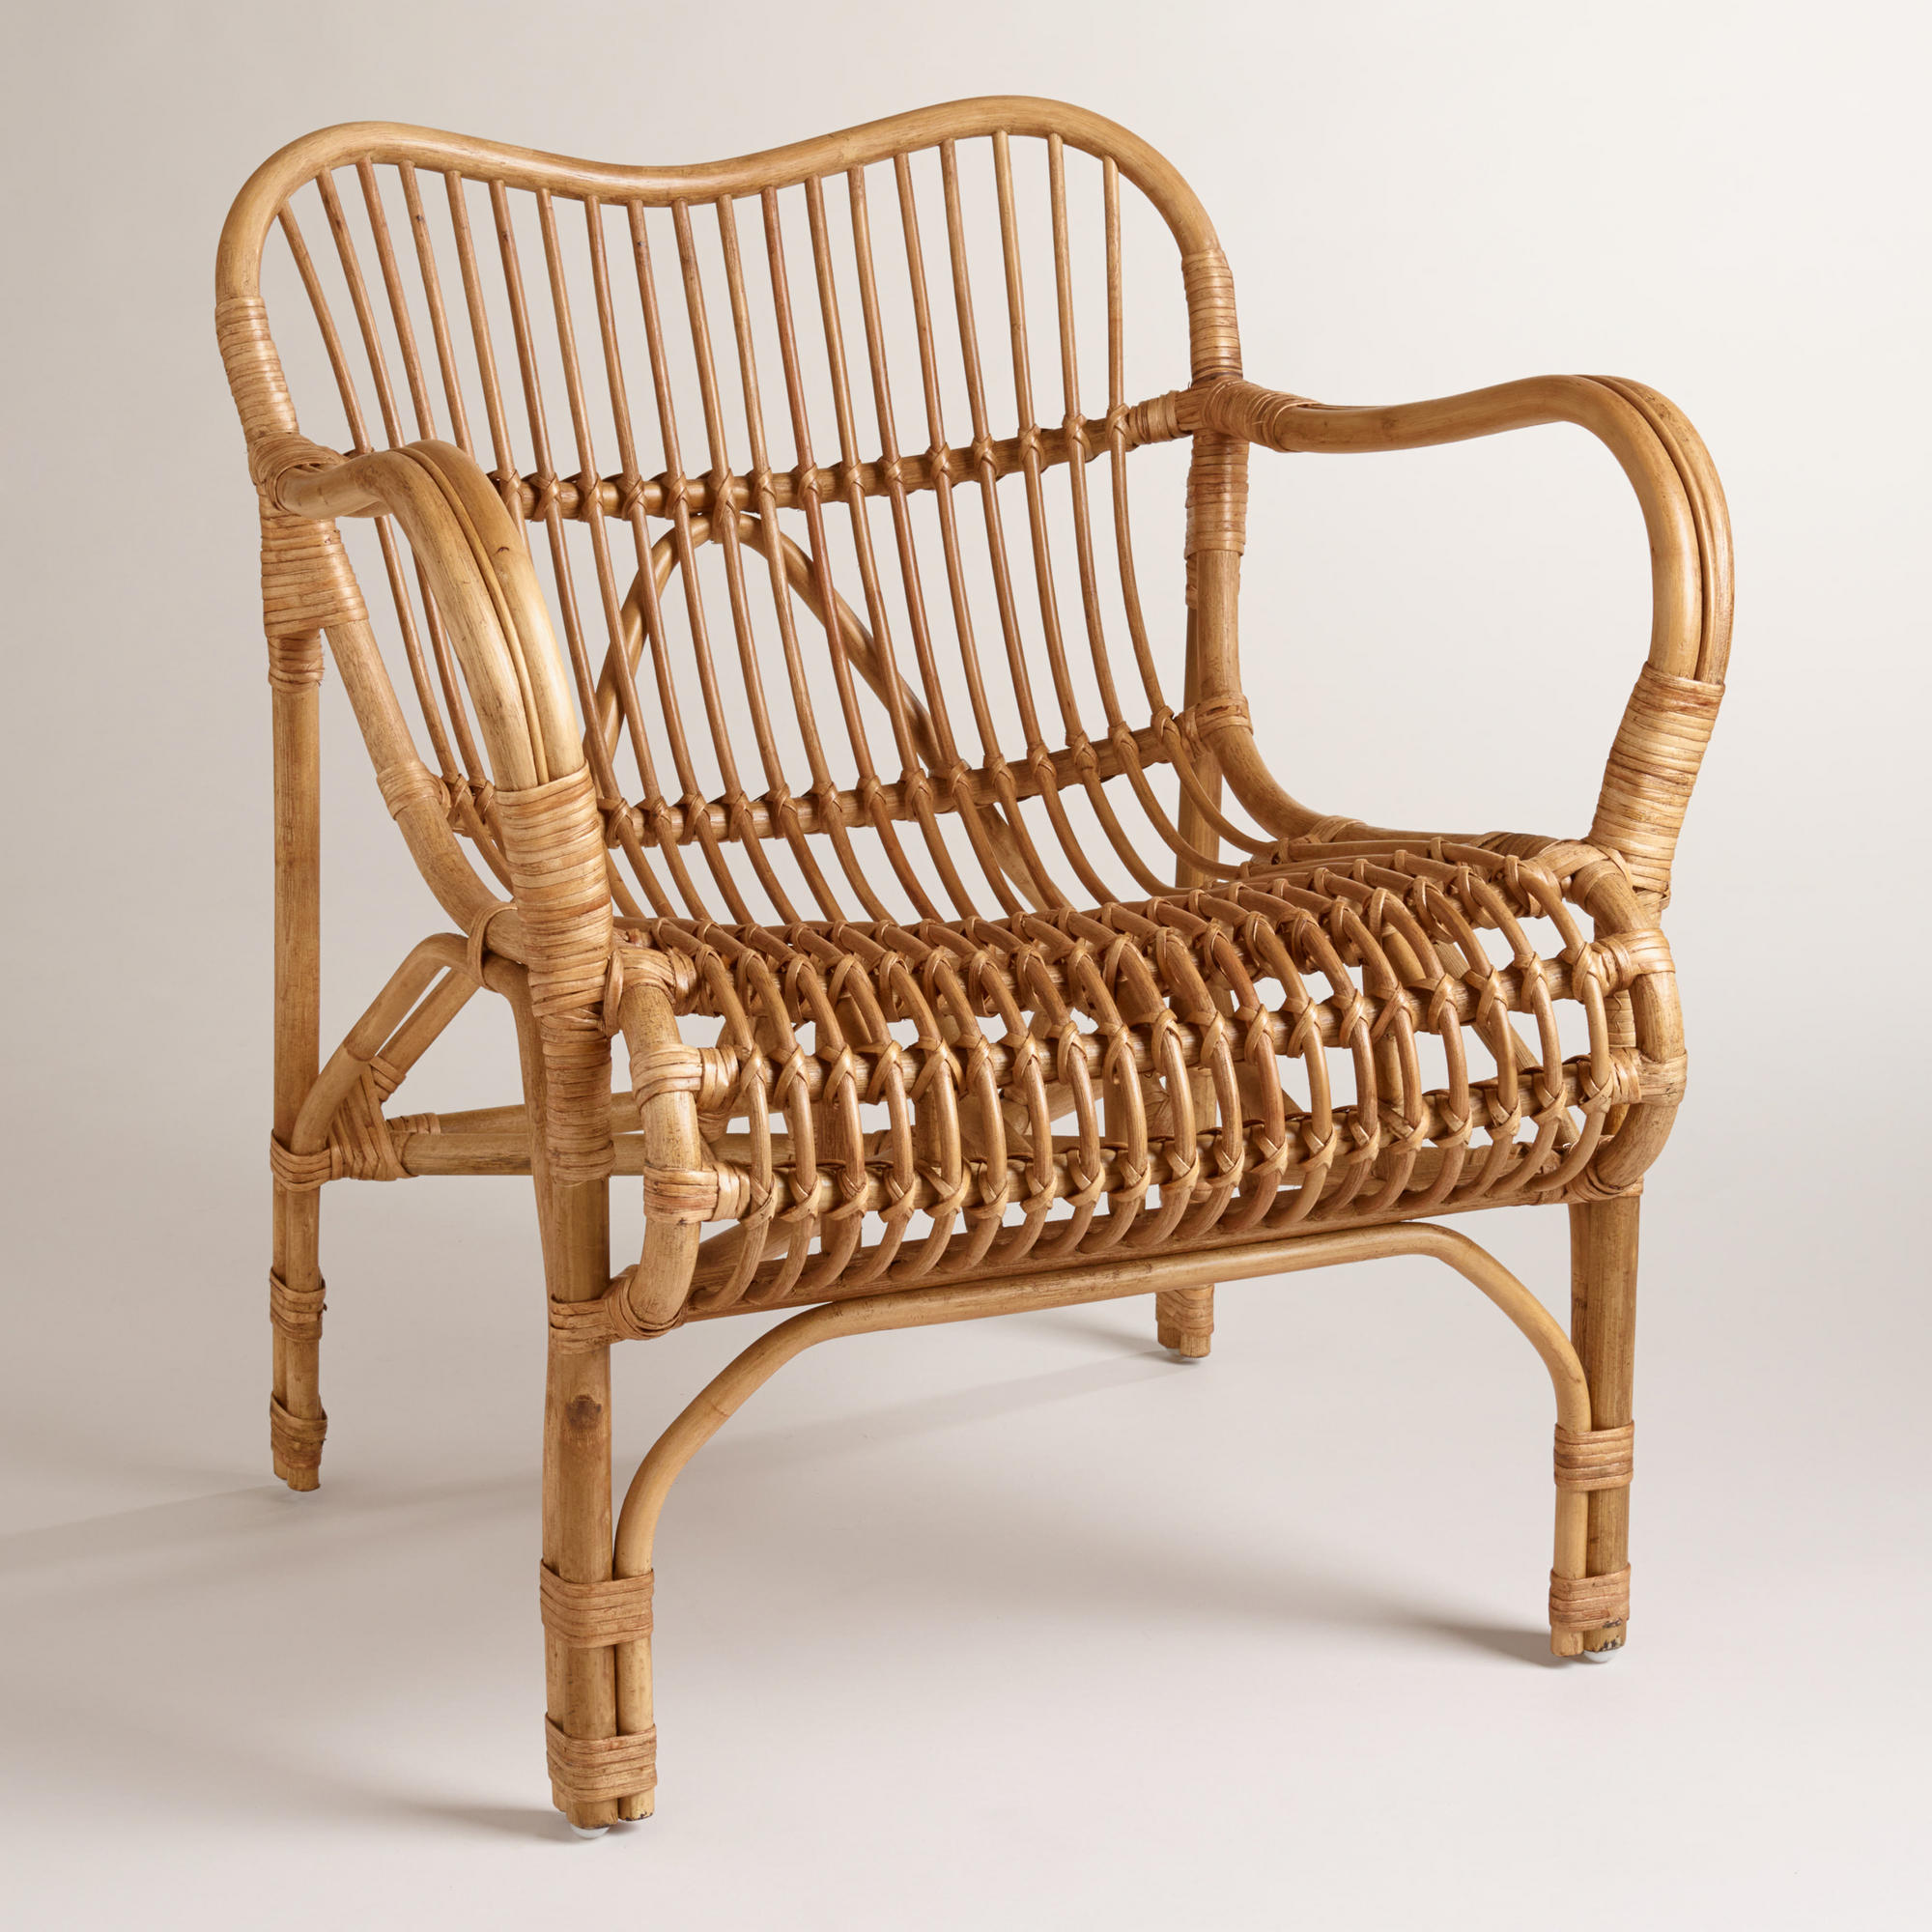 cane bamboo furniture handicraft